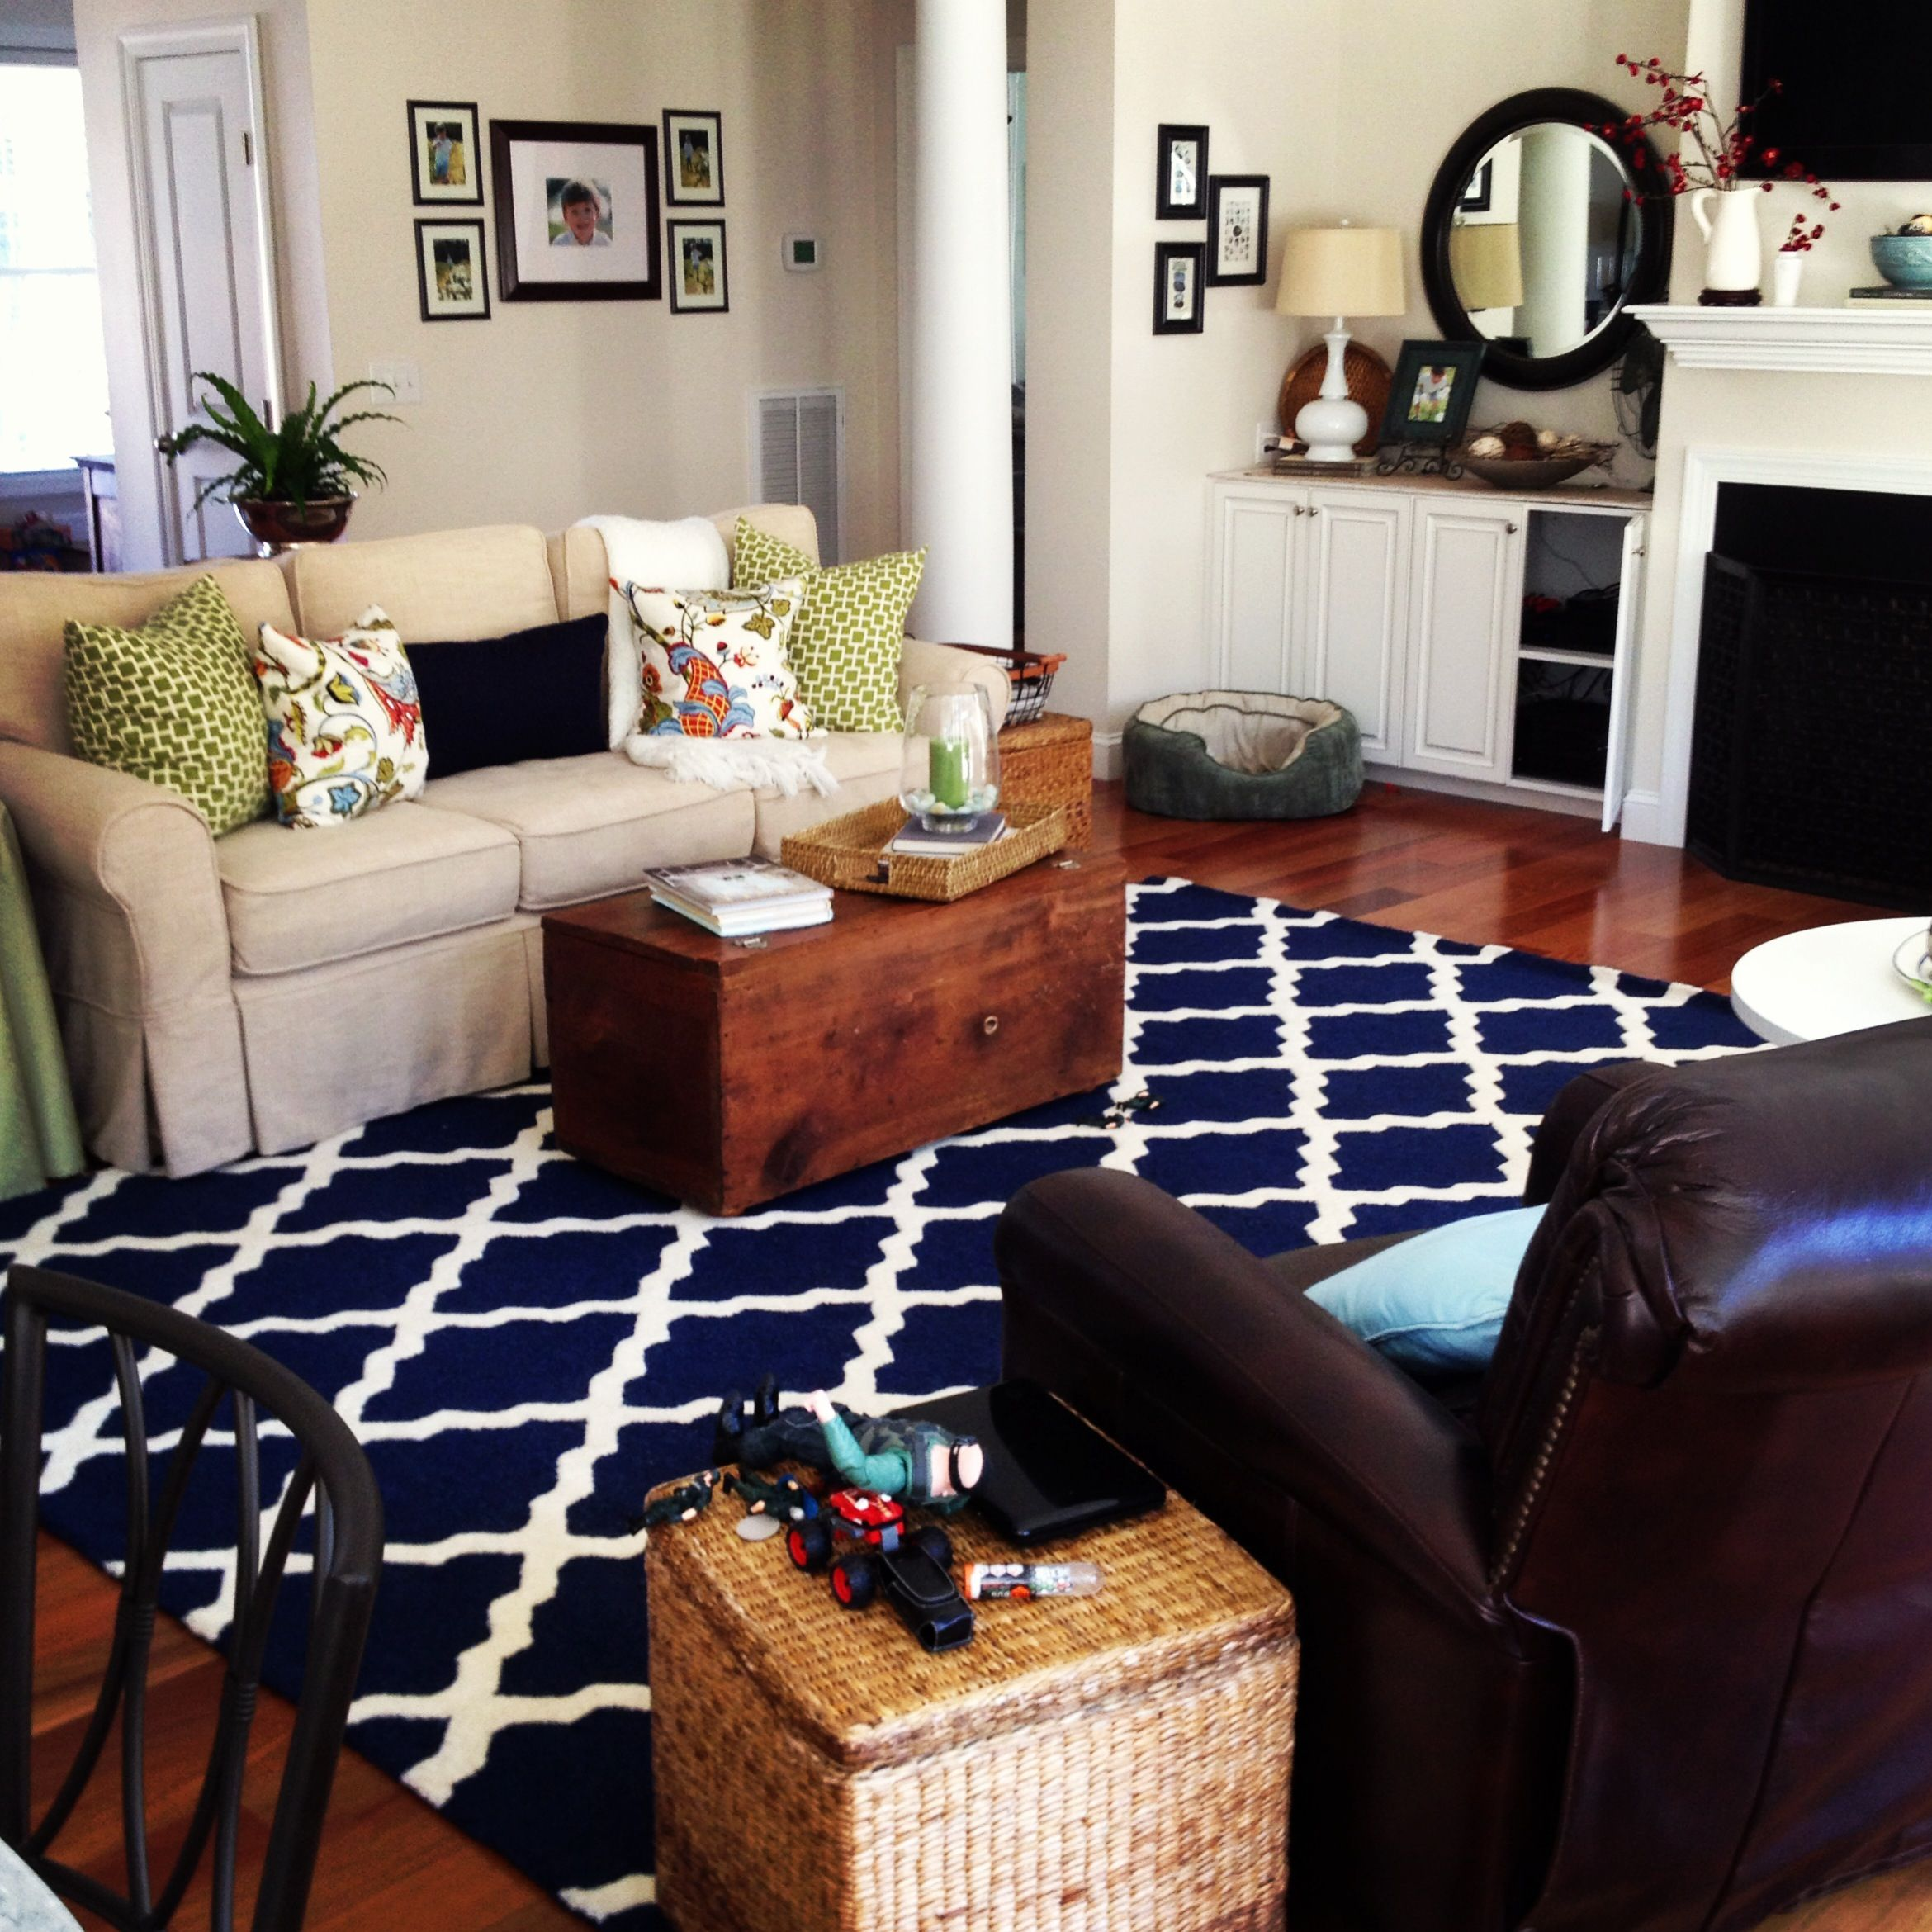 Found A Rug To Complete My Living Room! Rug From Overstock